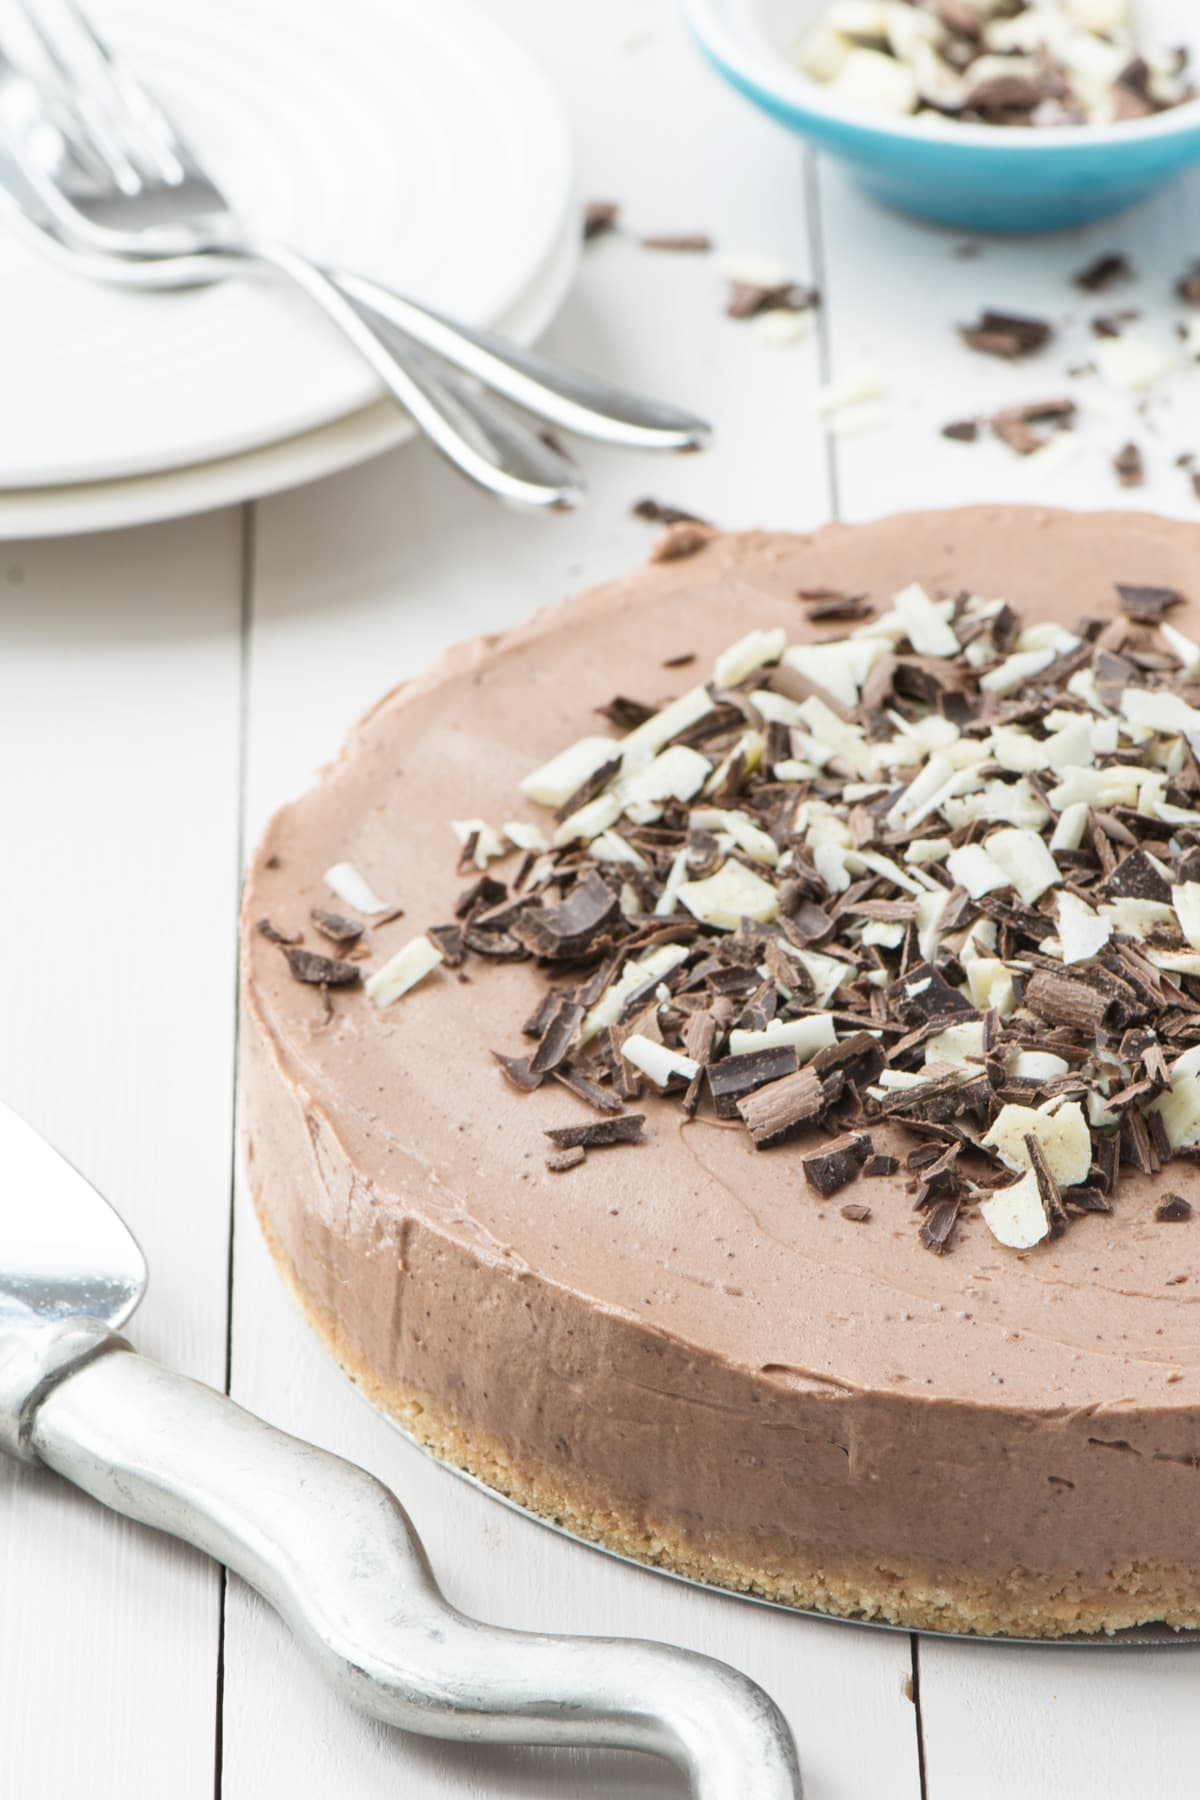 A no-bake chocolate cheesecake covered in white and dark chocolate curls next to a cake slice. There are white plates and cake forks and a pot of chocolate curls in the background.